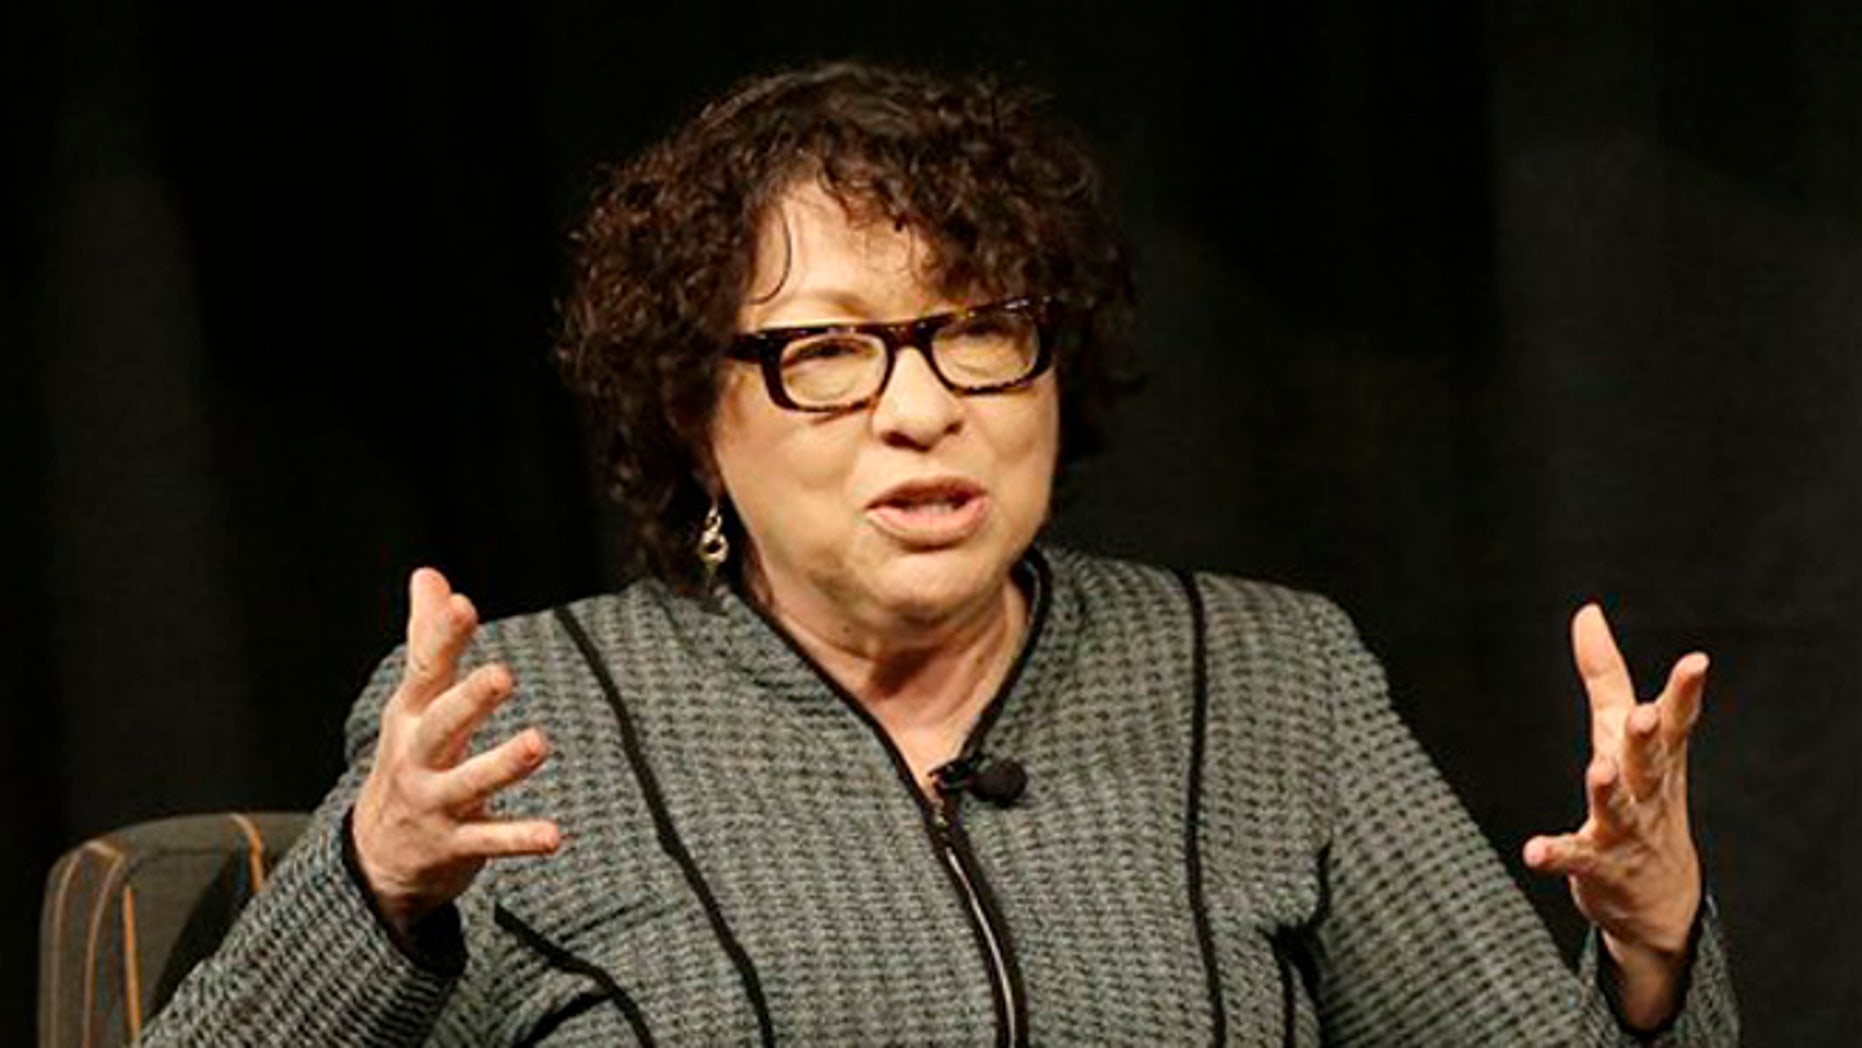 FILE - In this Oct. 20, 2014 file-pool photo, Supreme Court Justice Sonia Sotomayor speaks in San Jose, Calif. A hallmark in the search for a new Supreme Court justice is the secretive process for making sure the choice is kept under wraps until the president is ready to reveal it.  (AP Photo/Jeff Chiu, File-Pool)